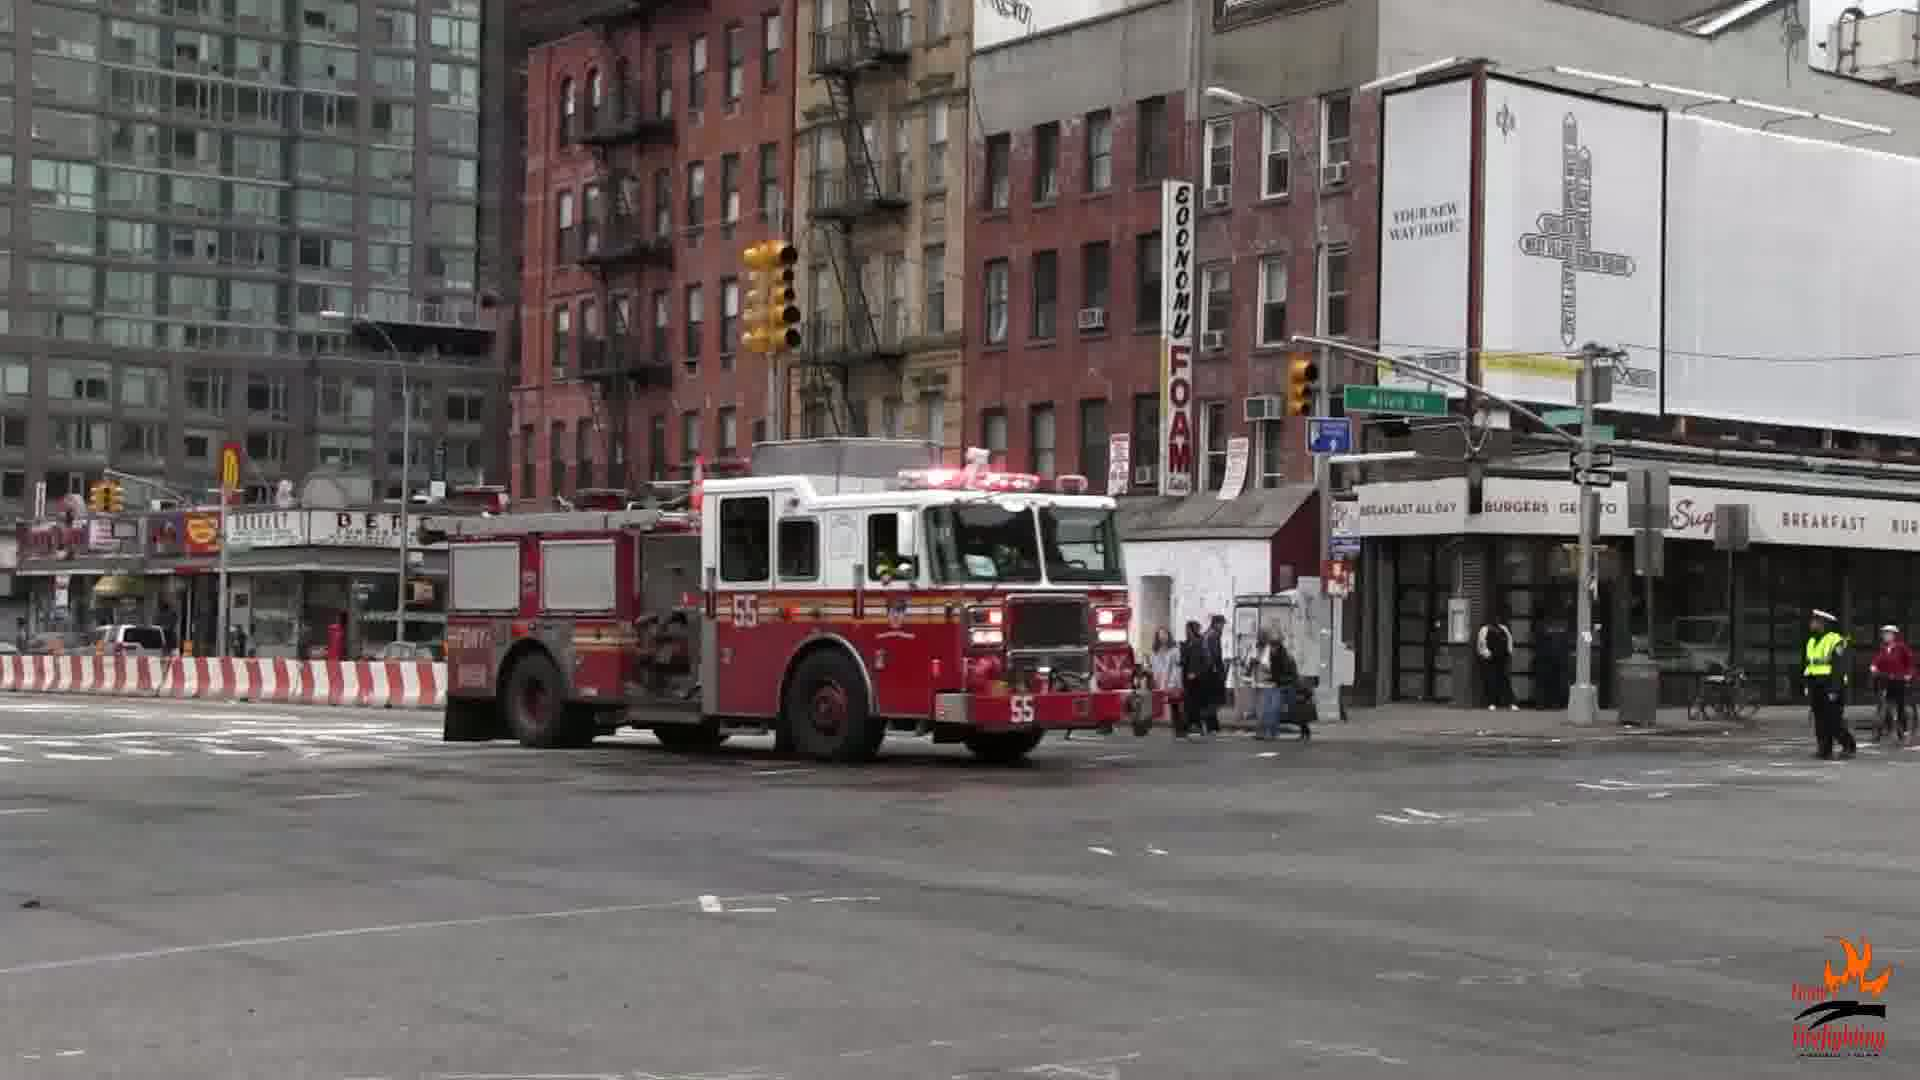 Engine 55 + Ambulance 120 FDNY + Ambulance 3338 Transmed